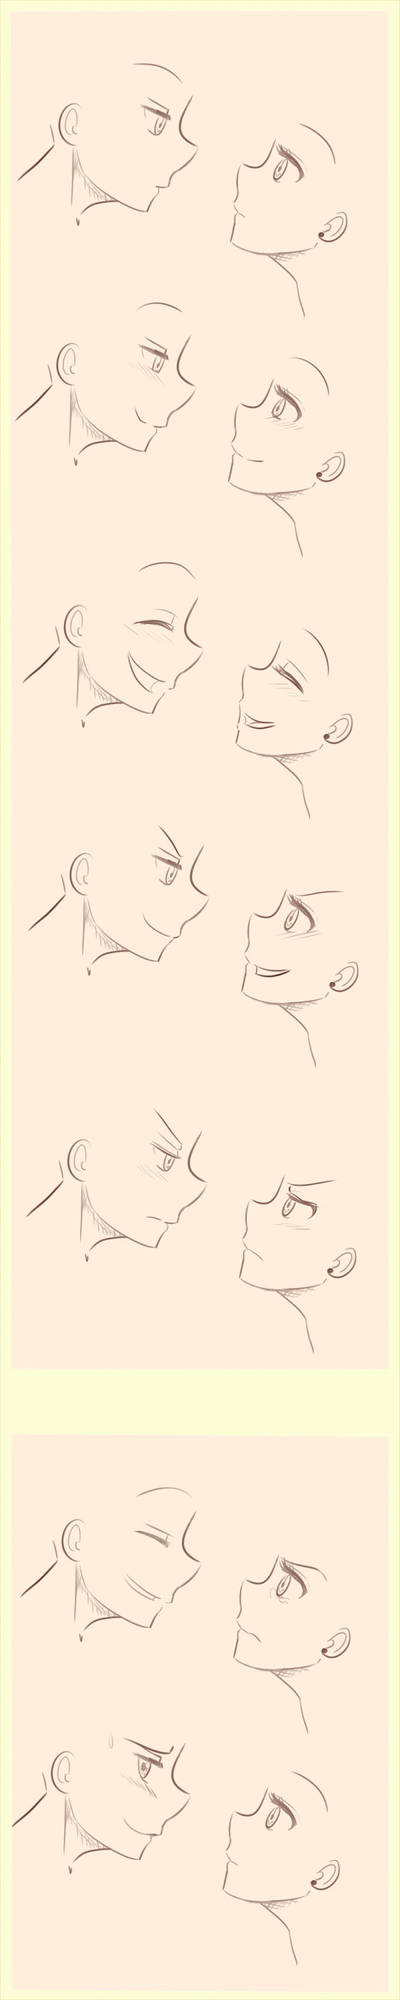 profile drawing reference www